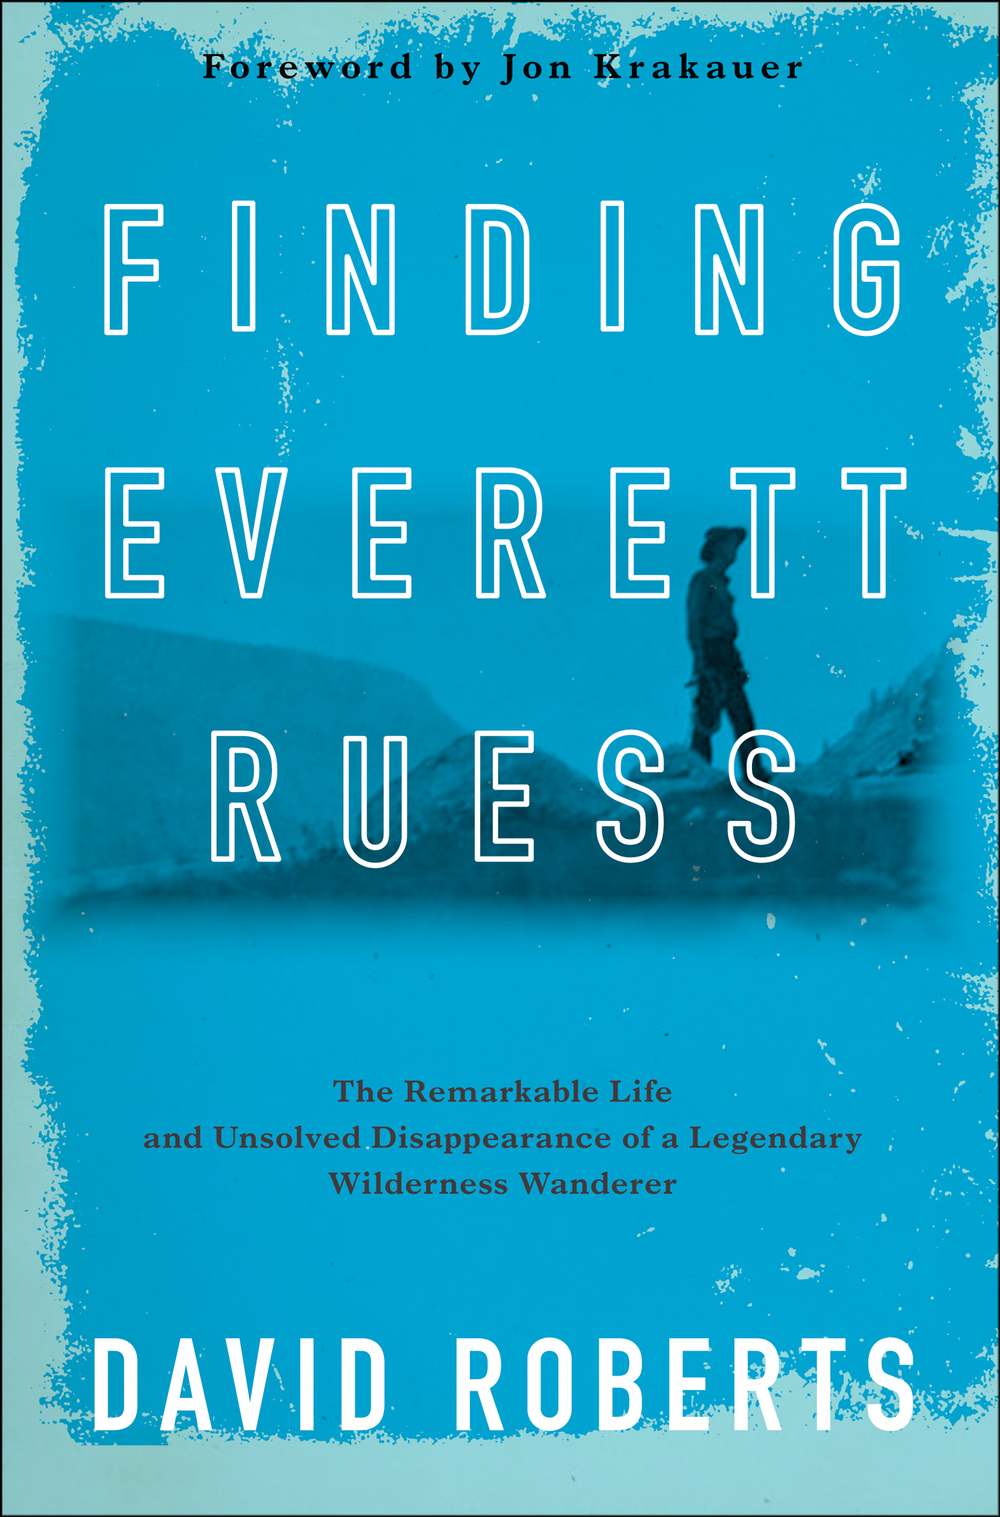 FINDING-EVERETT-RUESS-comp-ss6.jpg